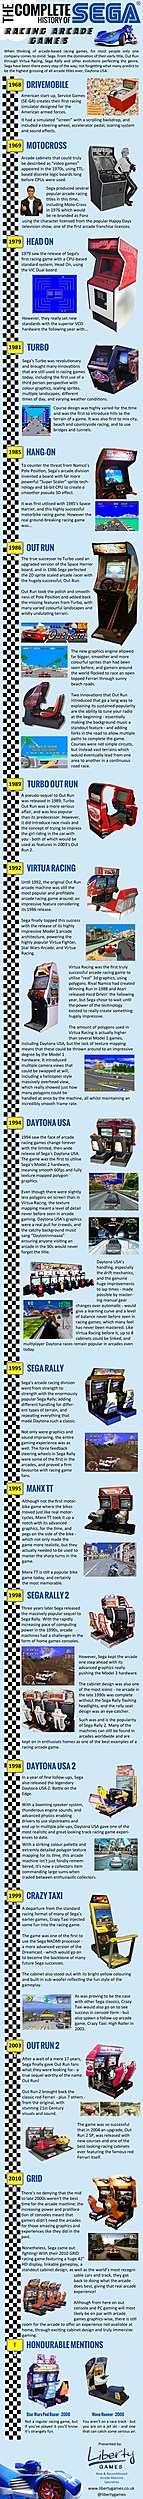 Complete History of SEGA Racing Arcade Games